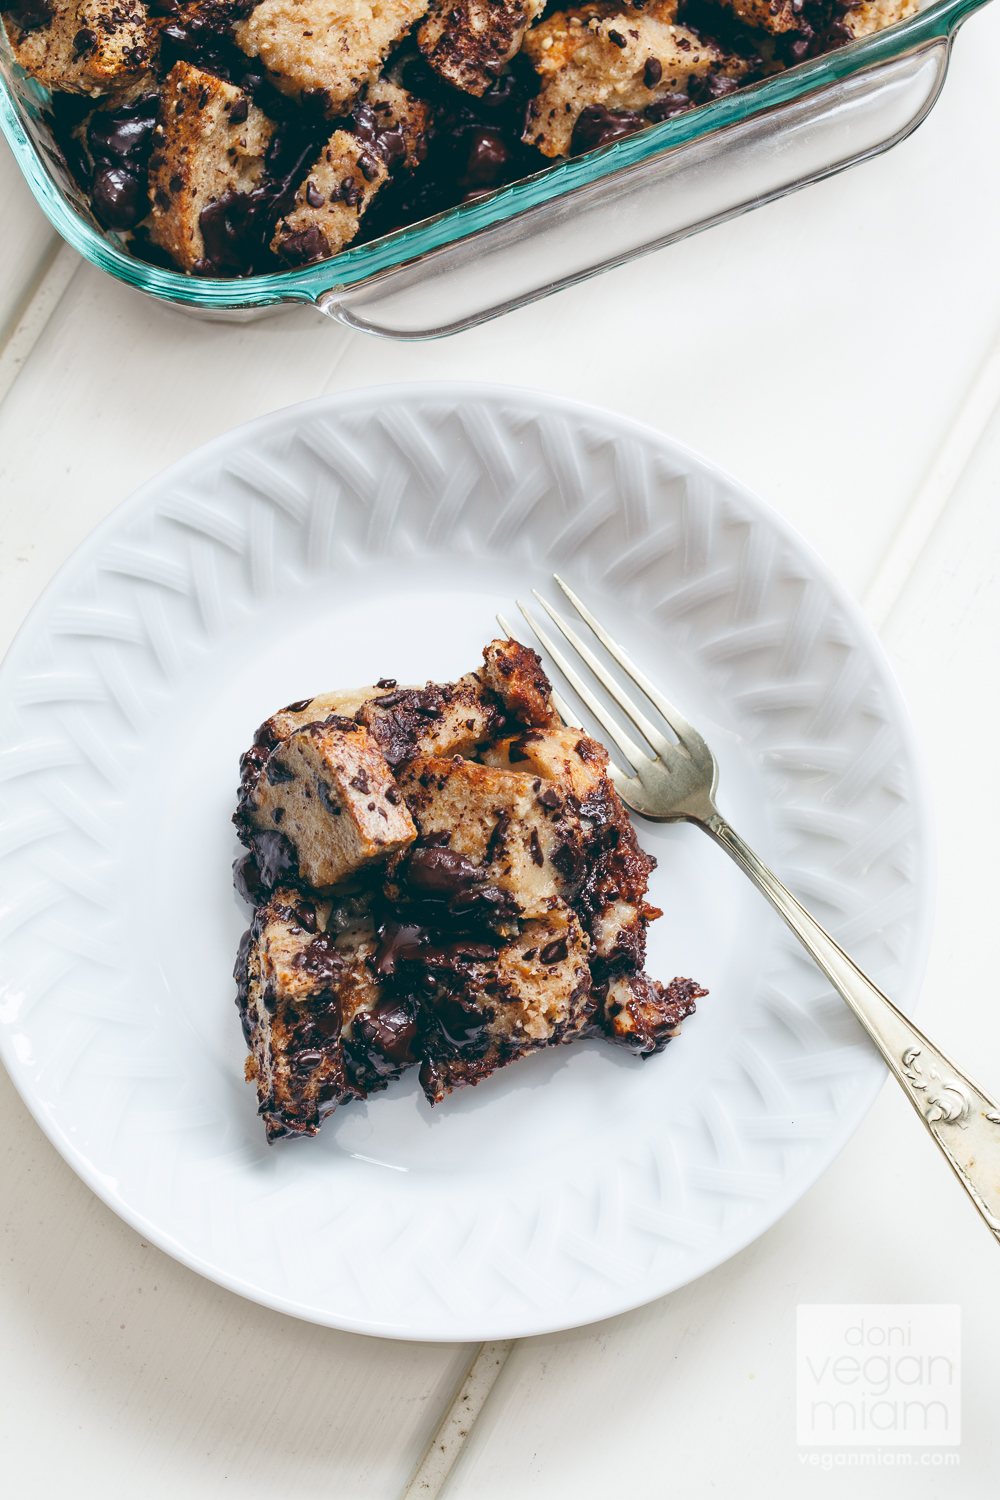 Chocolate Chunk Banana Bread pudding